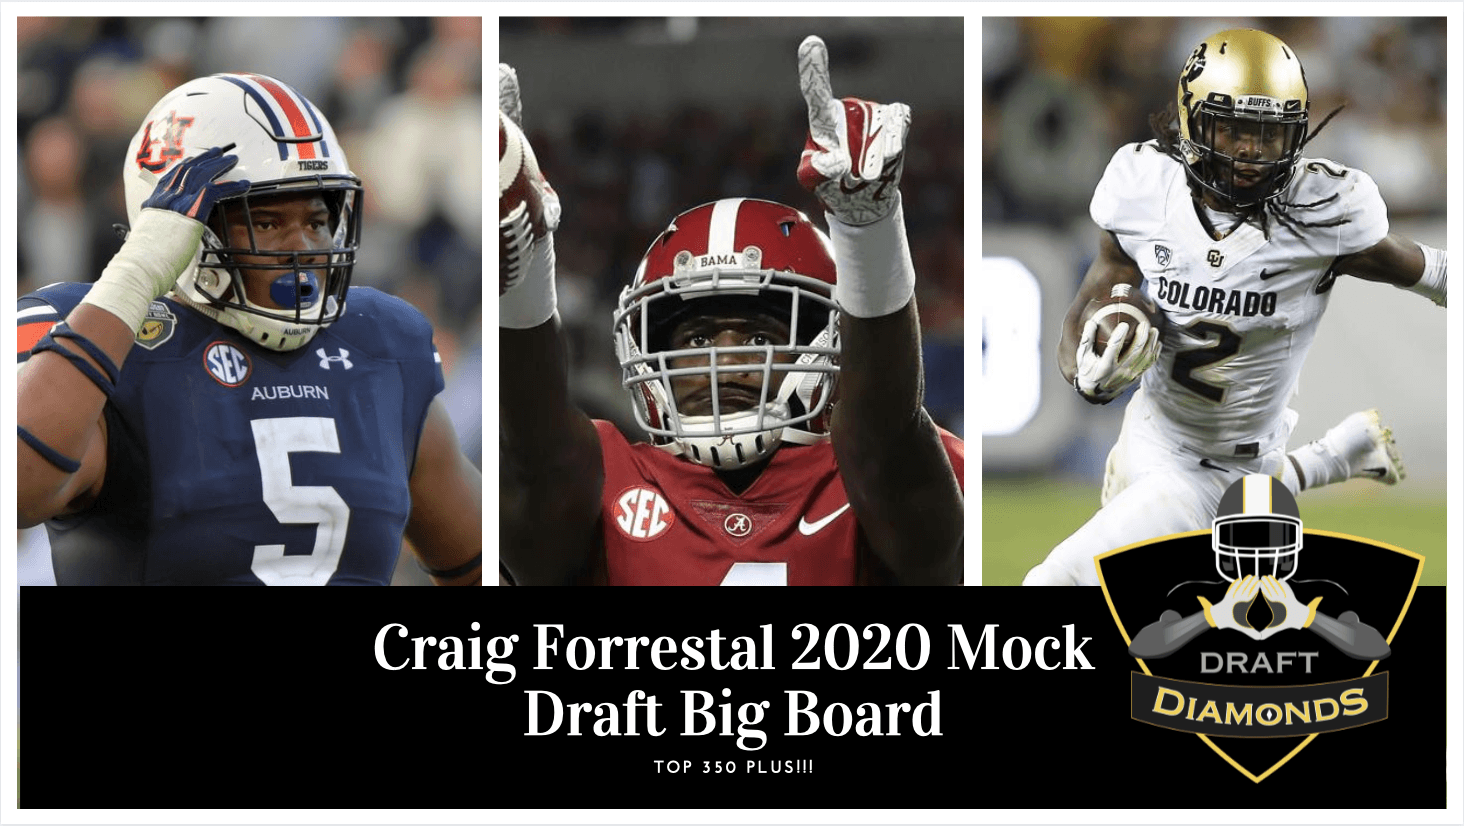 2020 Nfl Mock Draft Big Board By Craig Forrestal Of Draft